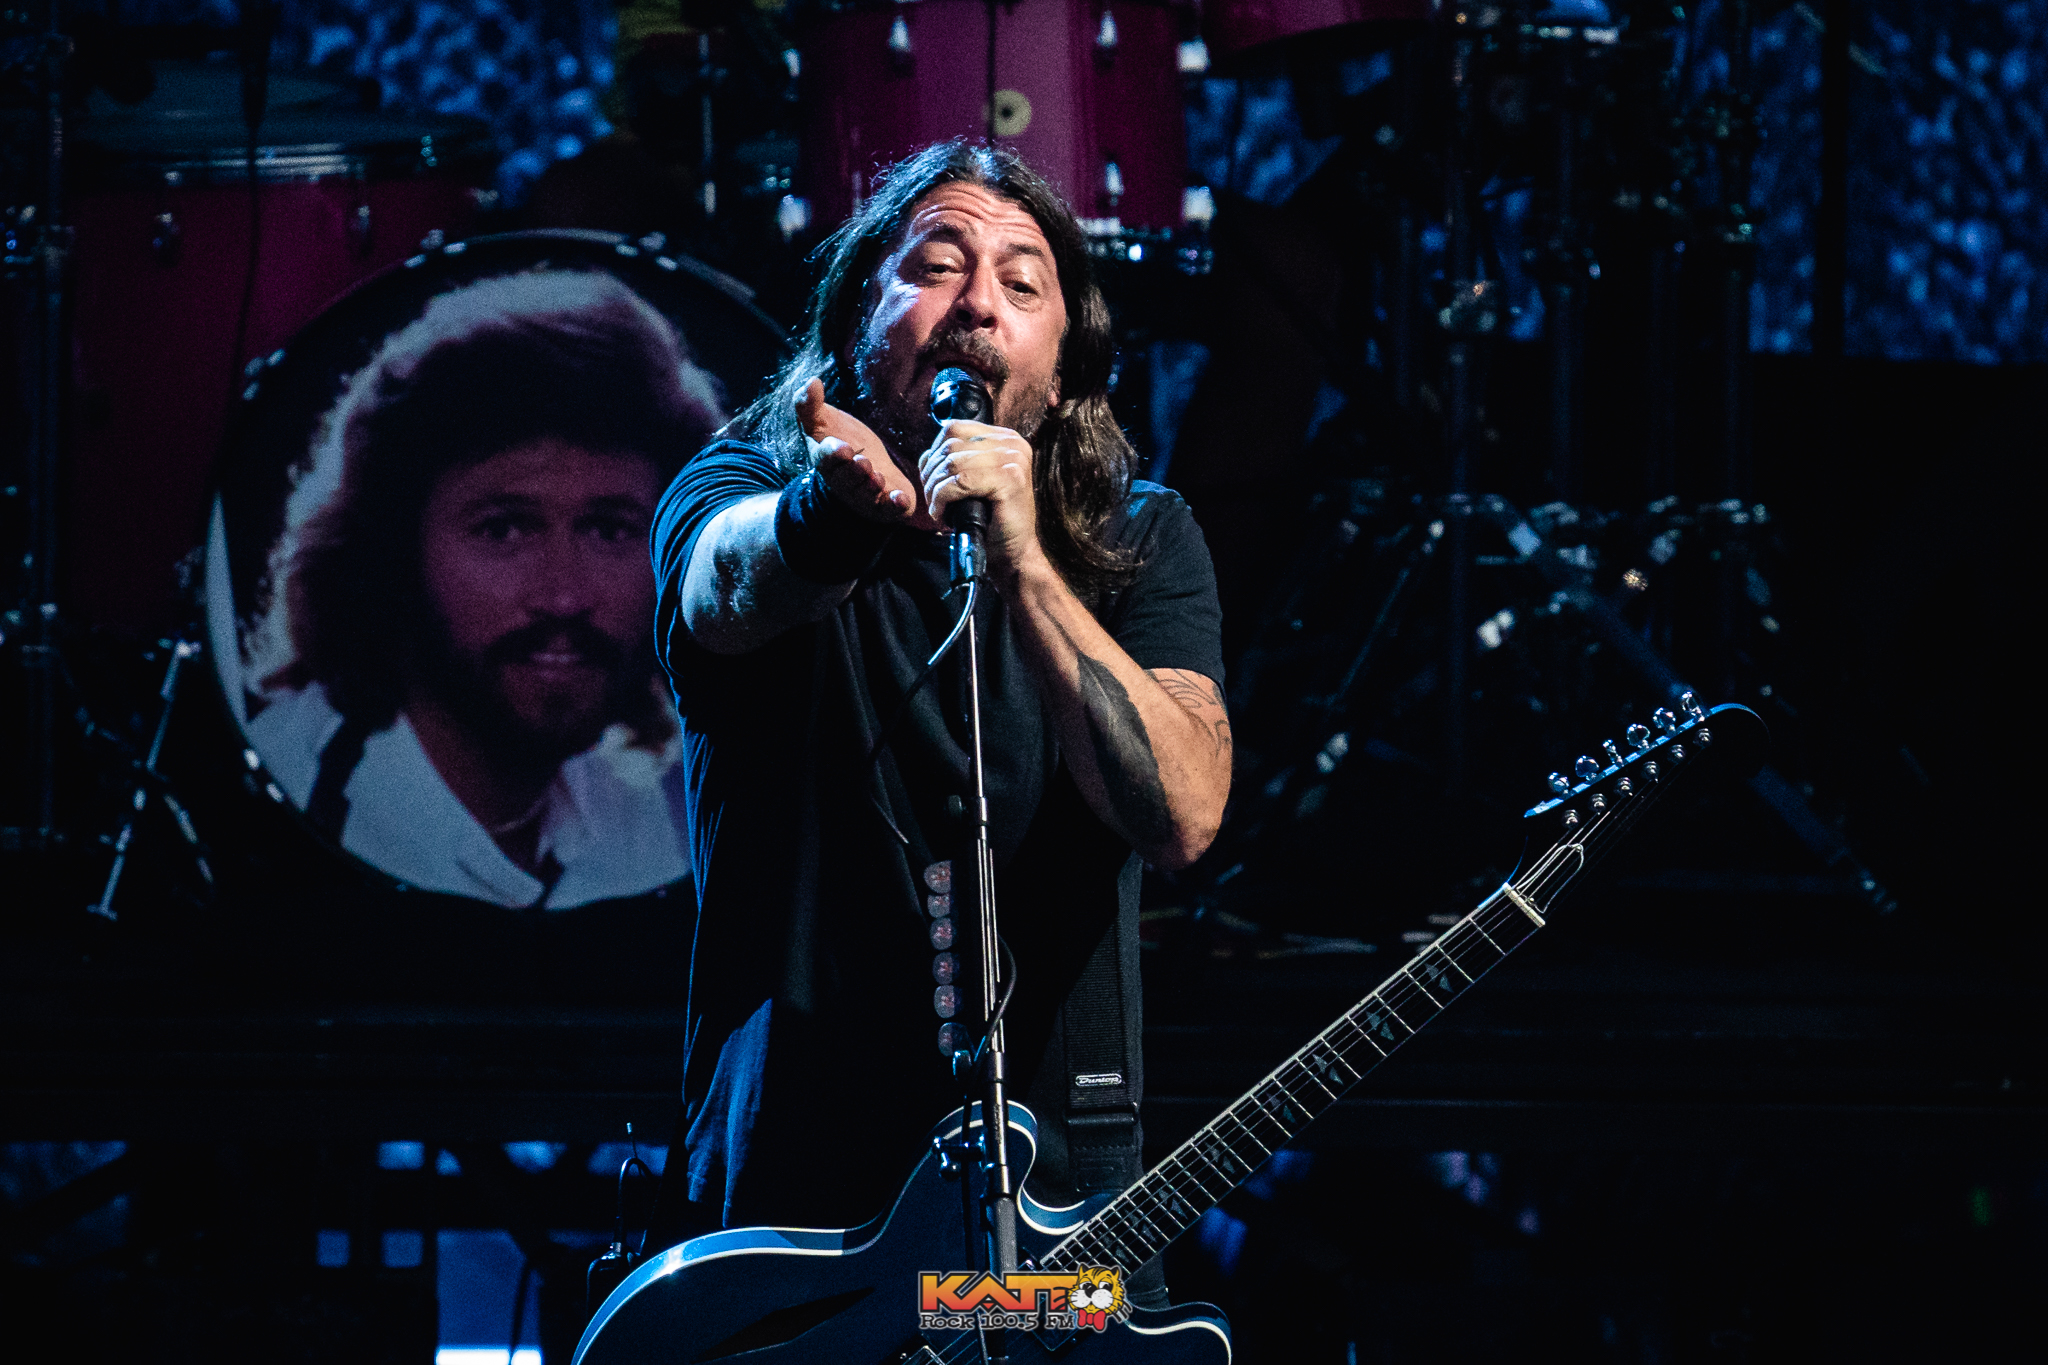 [PHOTOS] Foo Fighters at The Zoo Amphitheatre